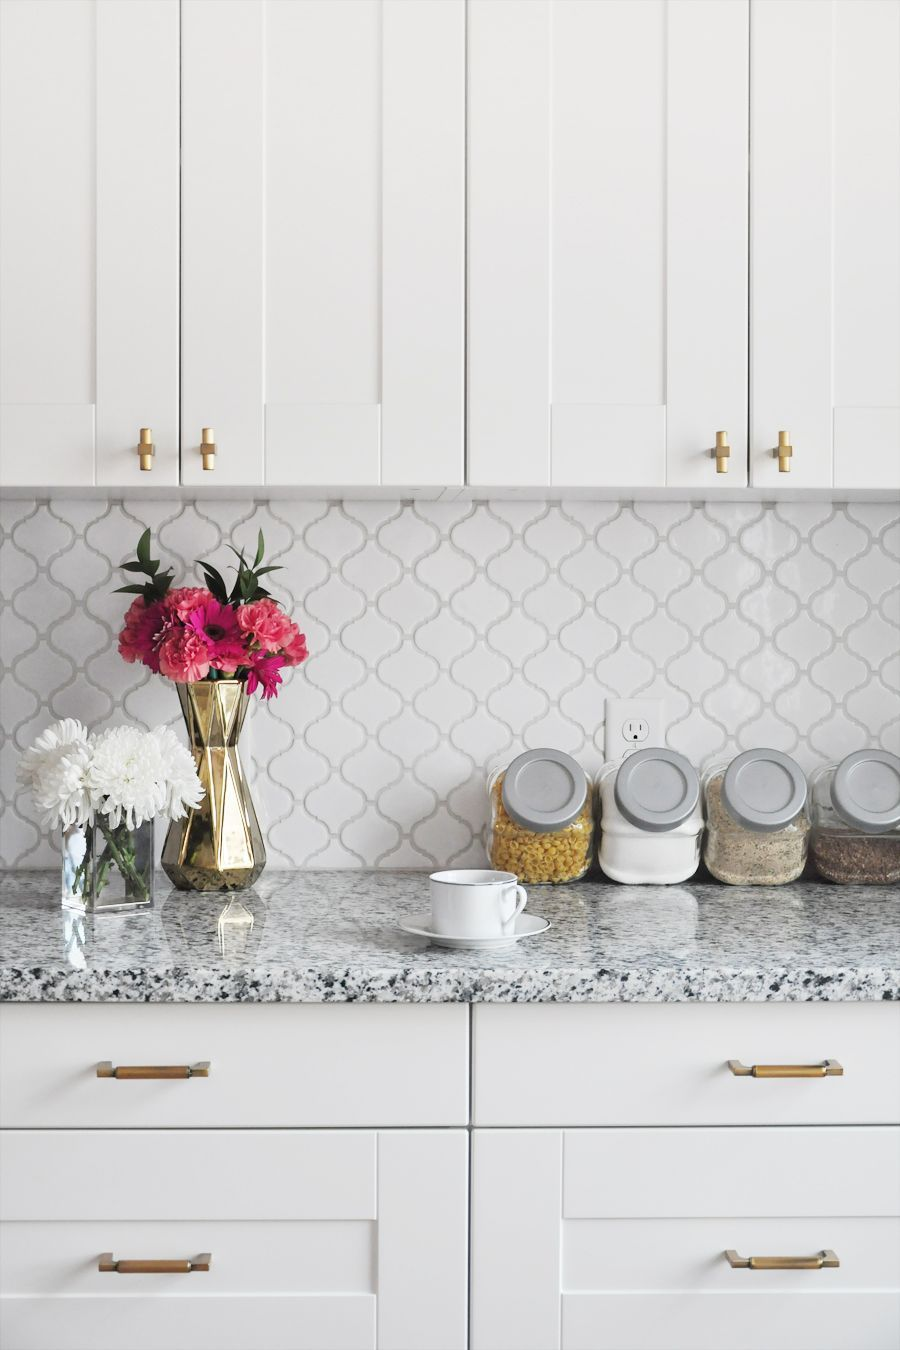 Arabesque Backsplash Tile